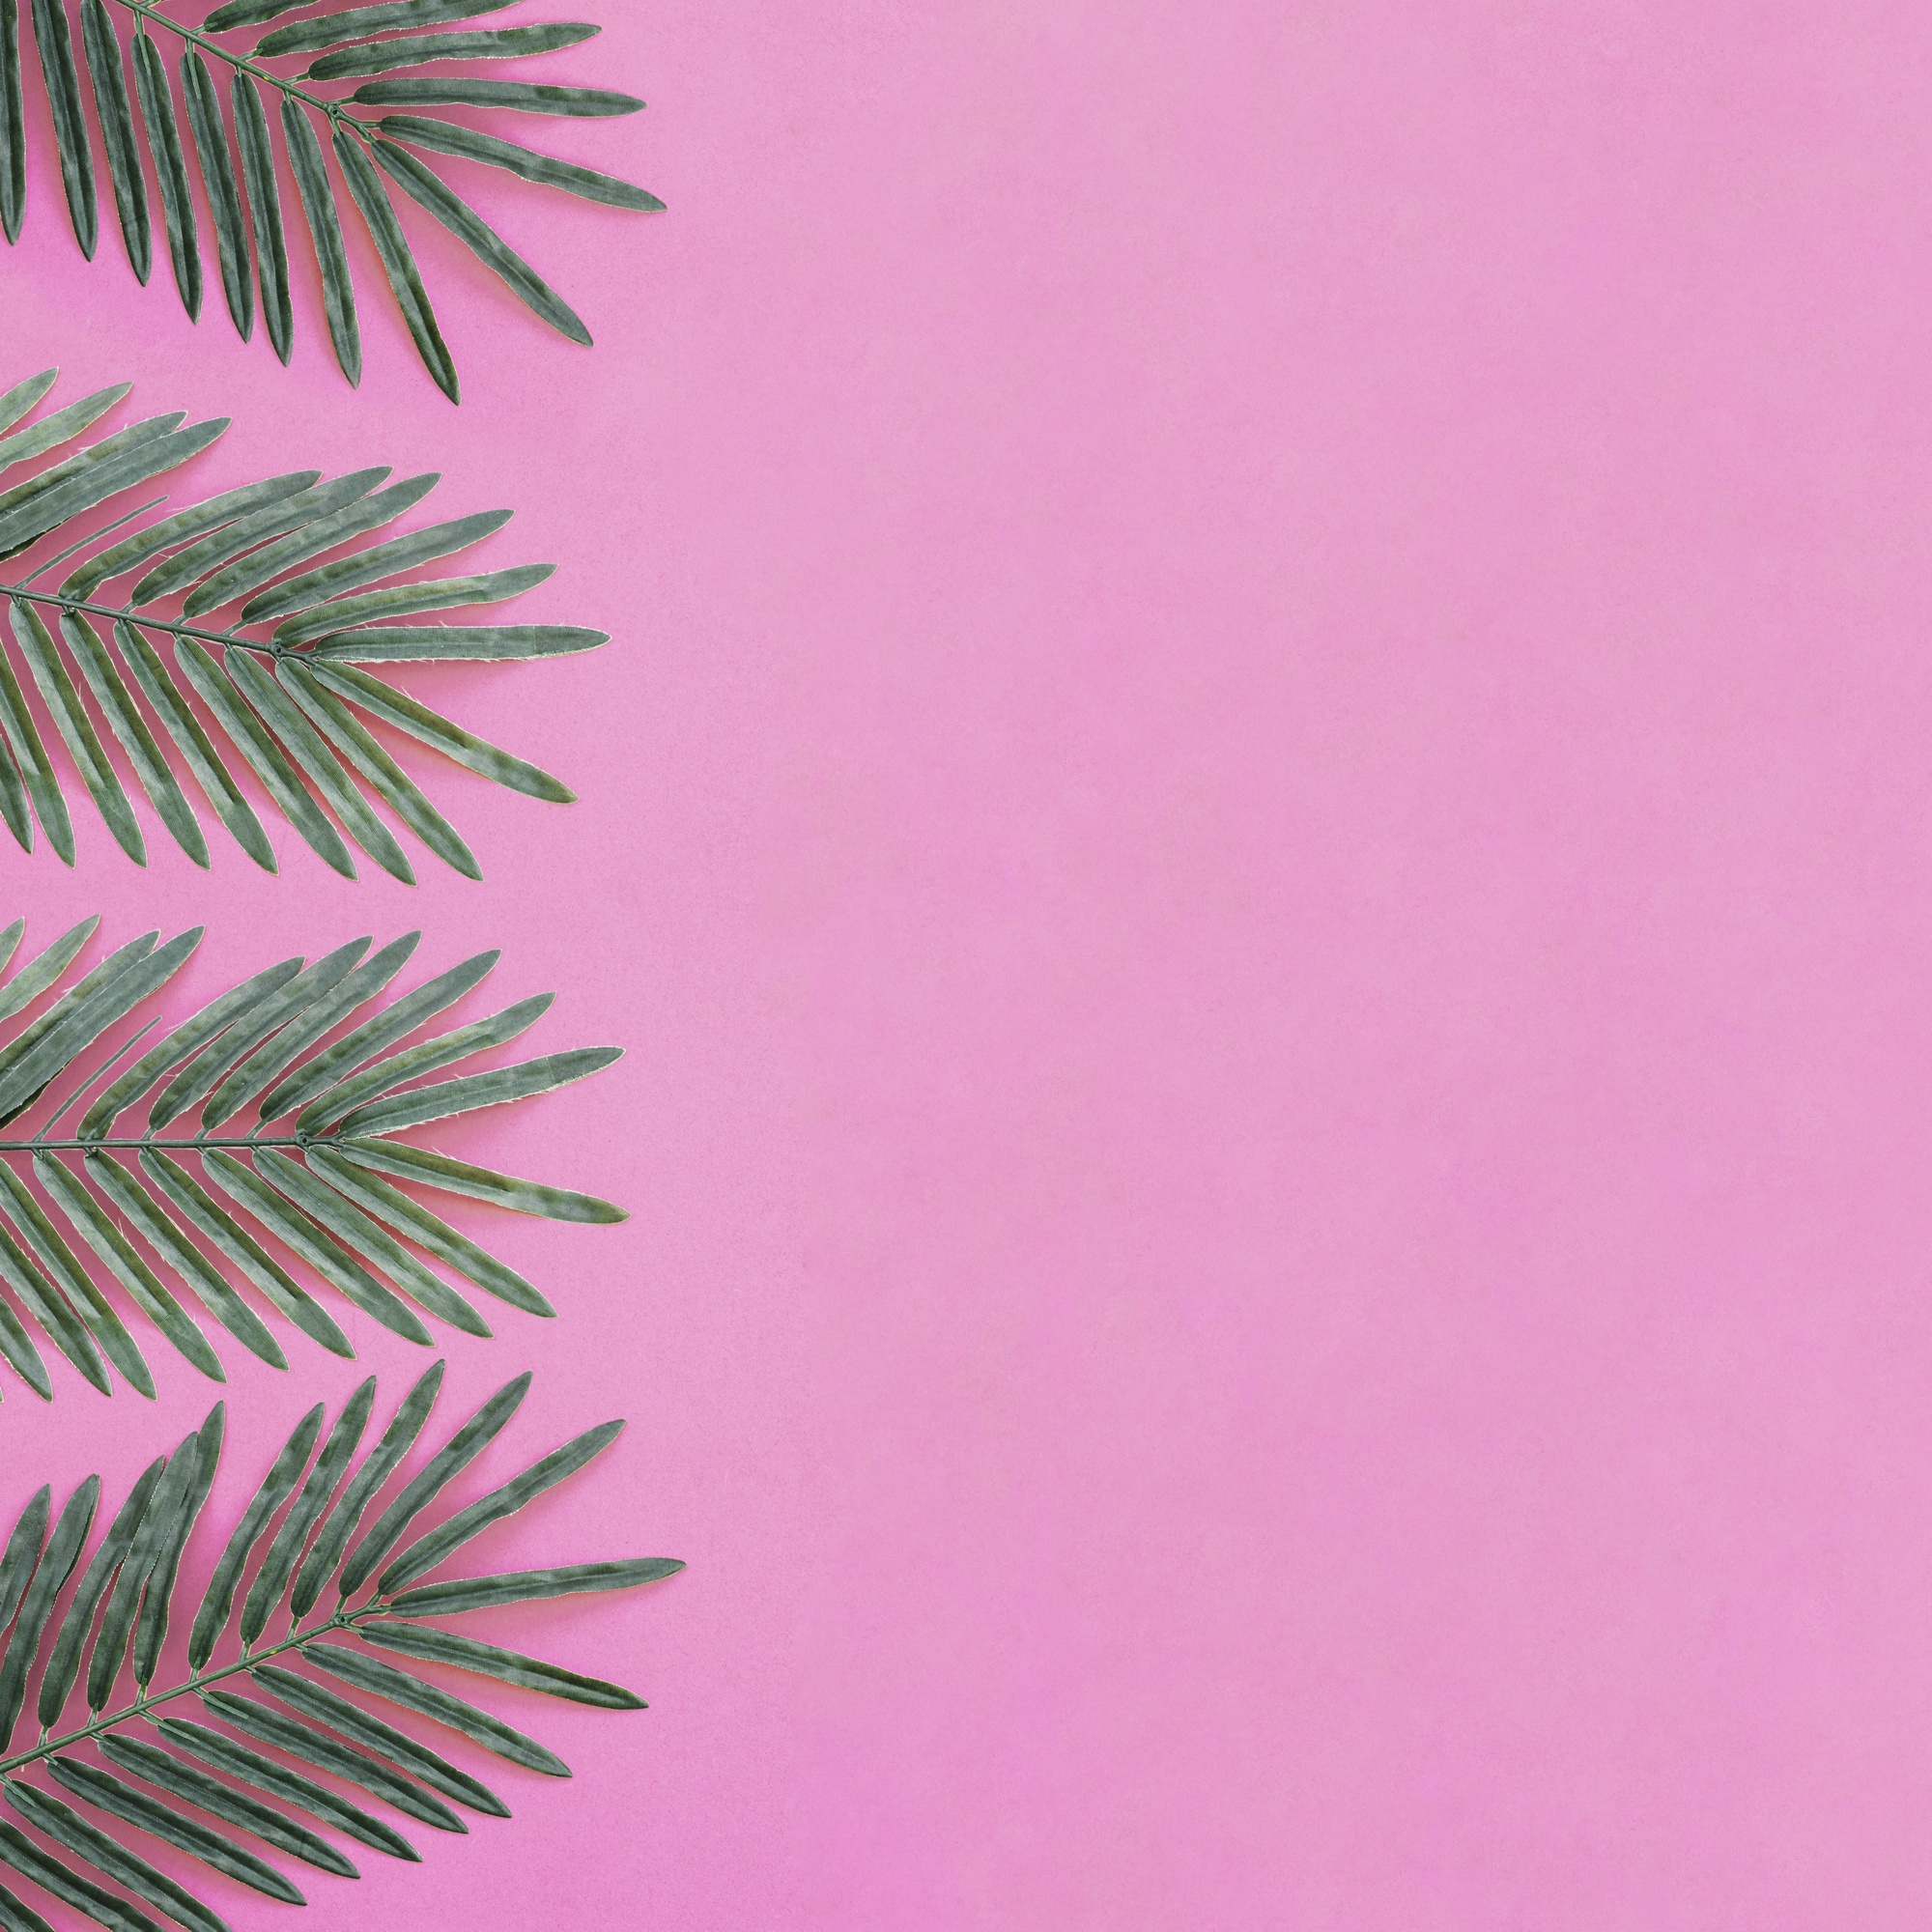 Beautiful palm leaves on pink background with space on the right